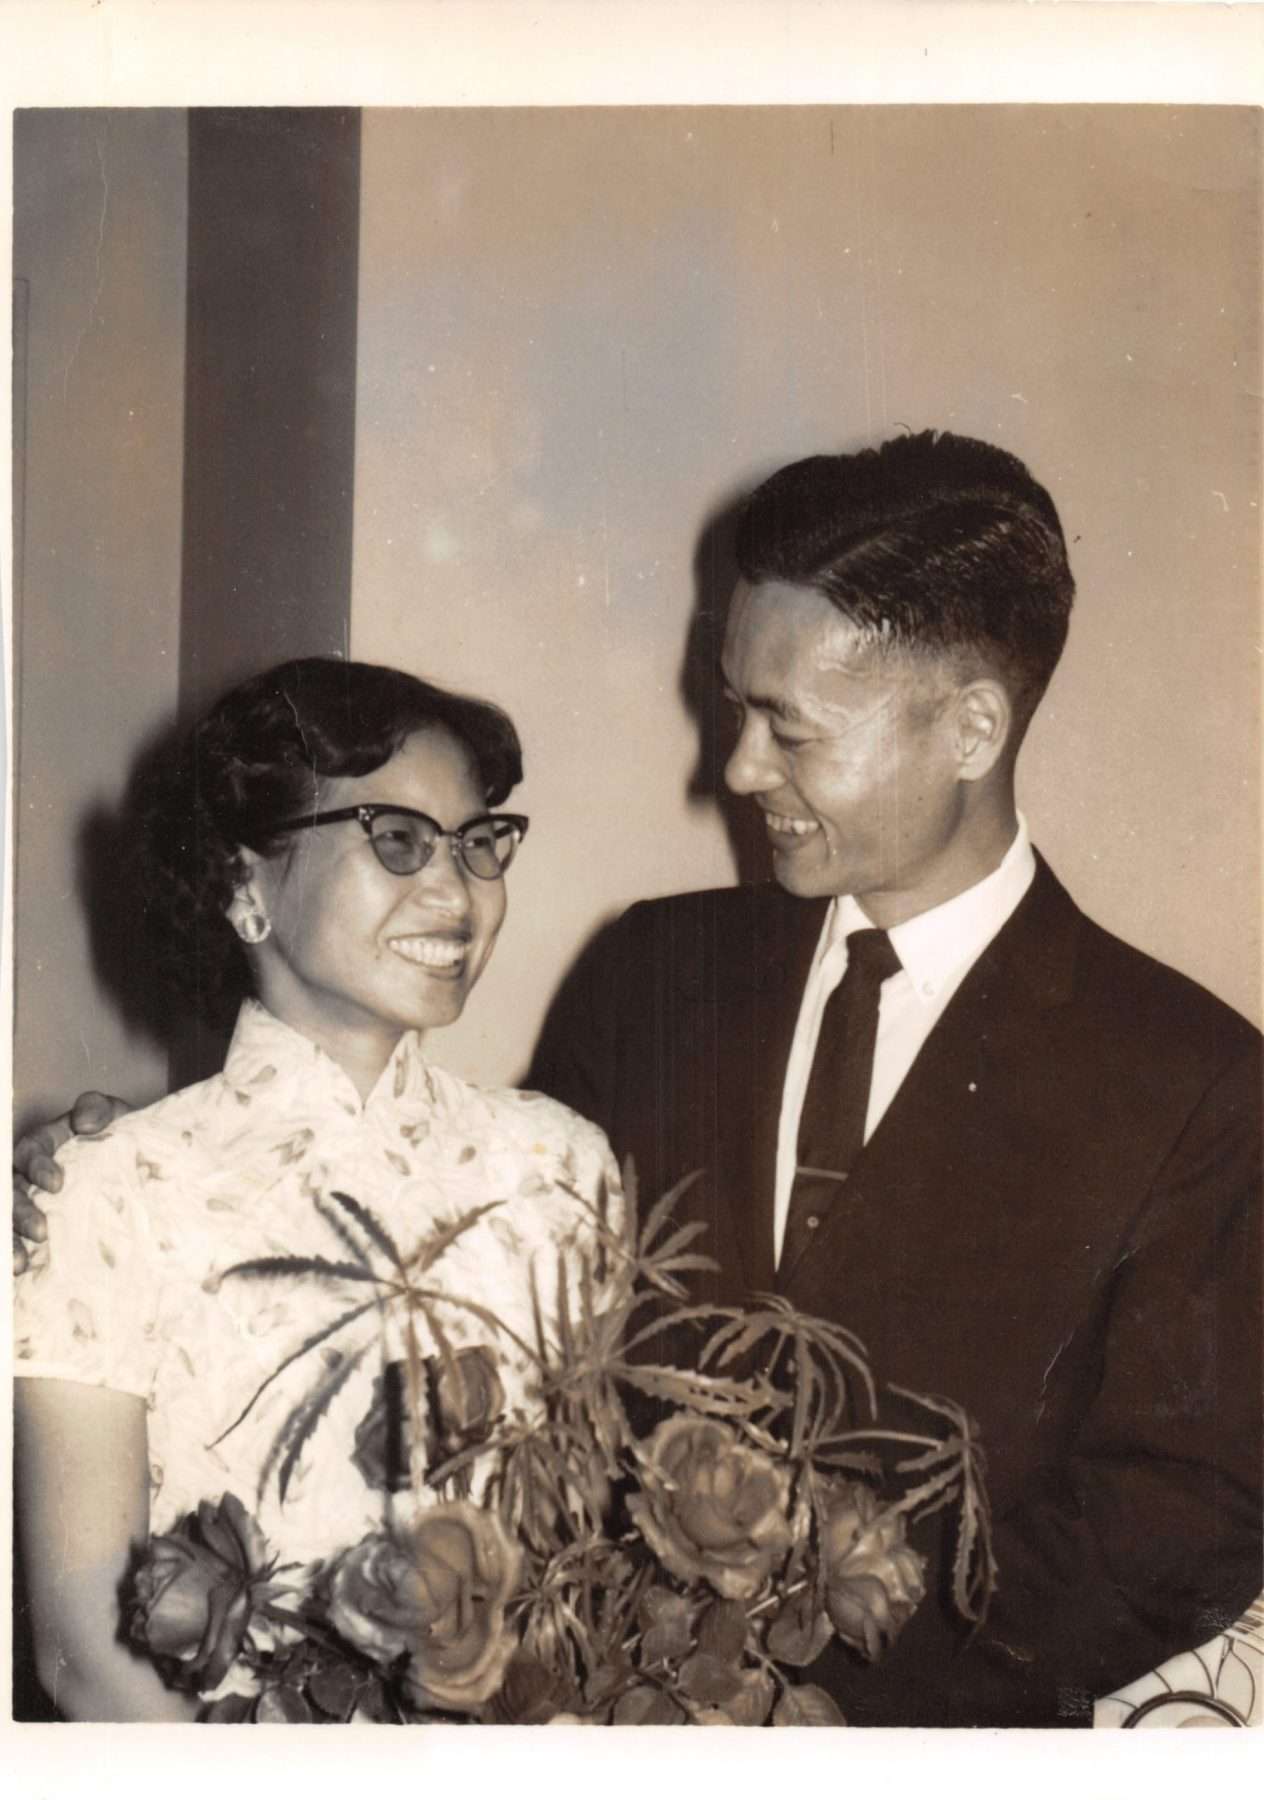 Dr. and Mrs. James S. C. Chao look lovingly at each other during their reunion in America after a long, three-year separation.